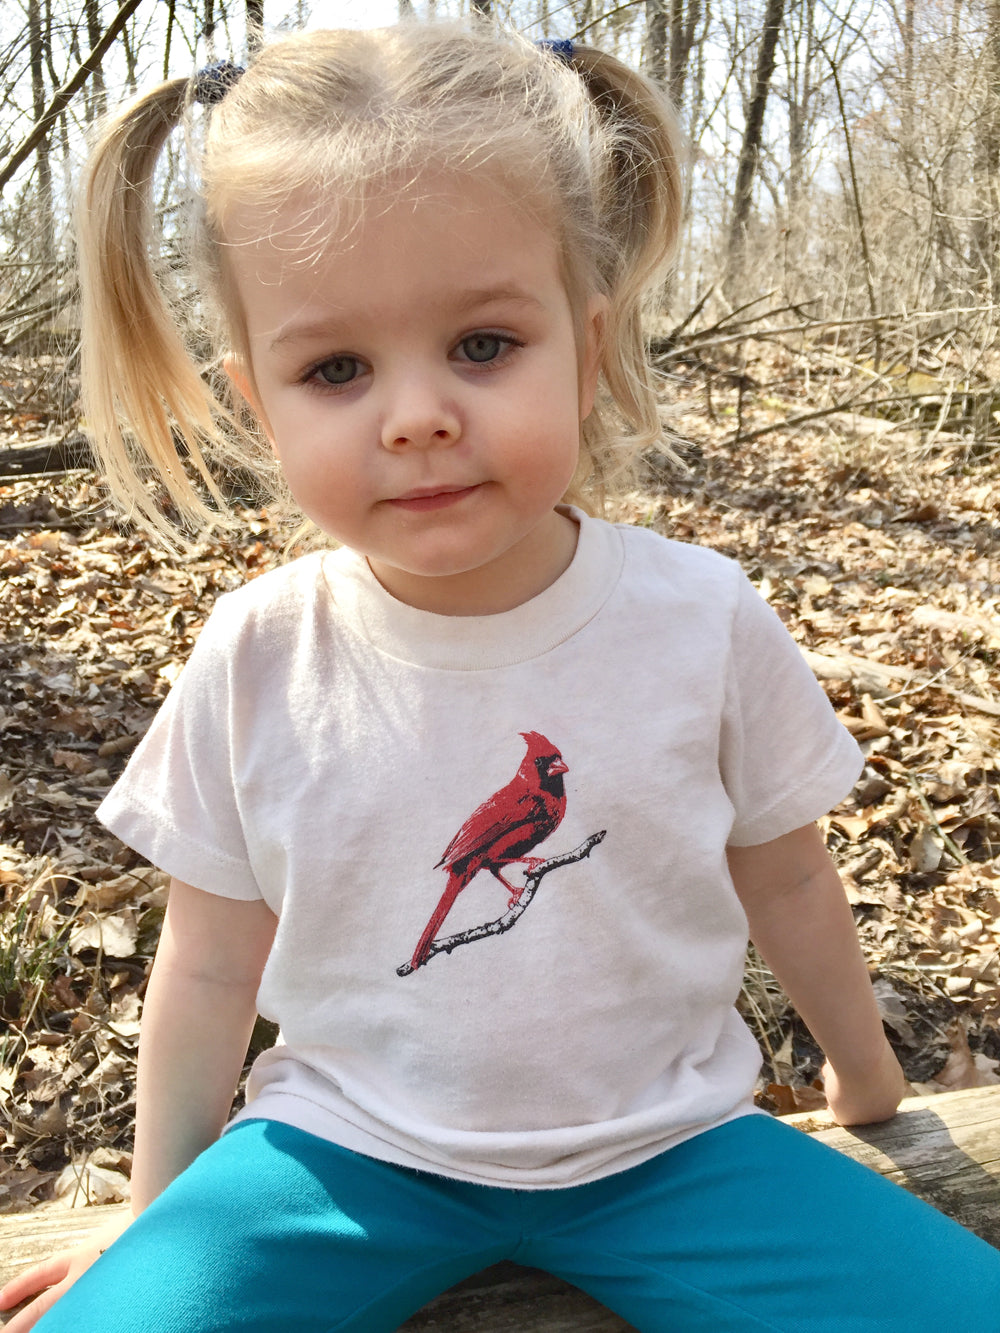 Cardinal Red Bird Toddler and Kid's Tshirt